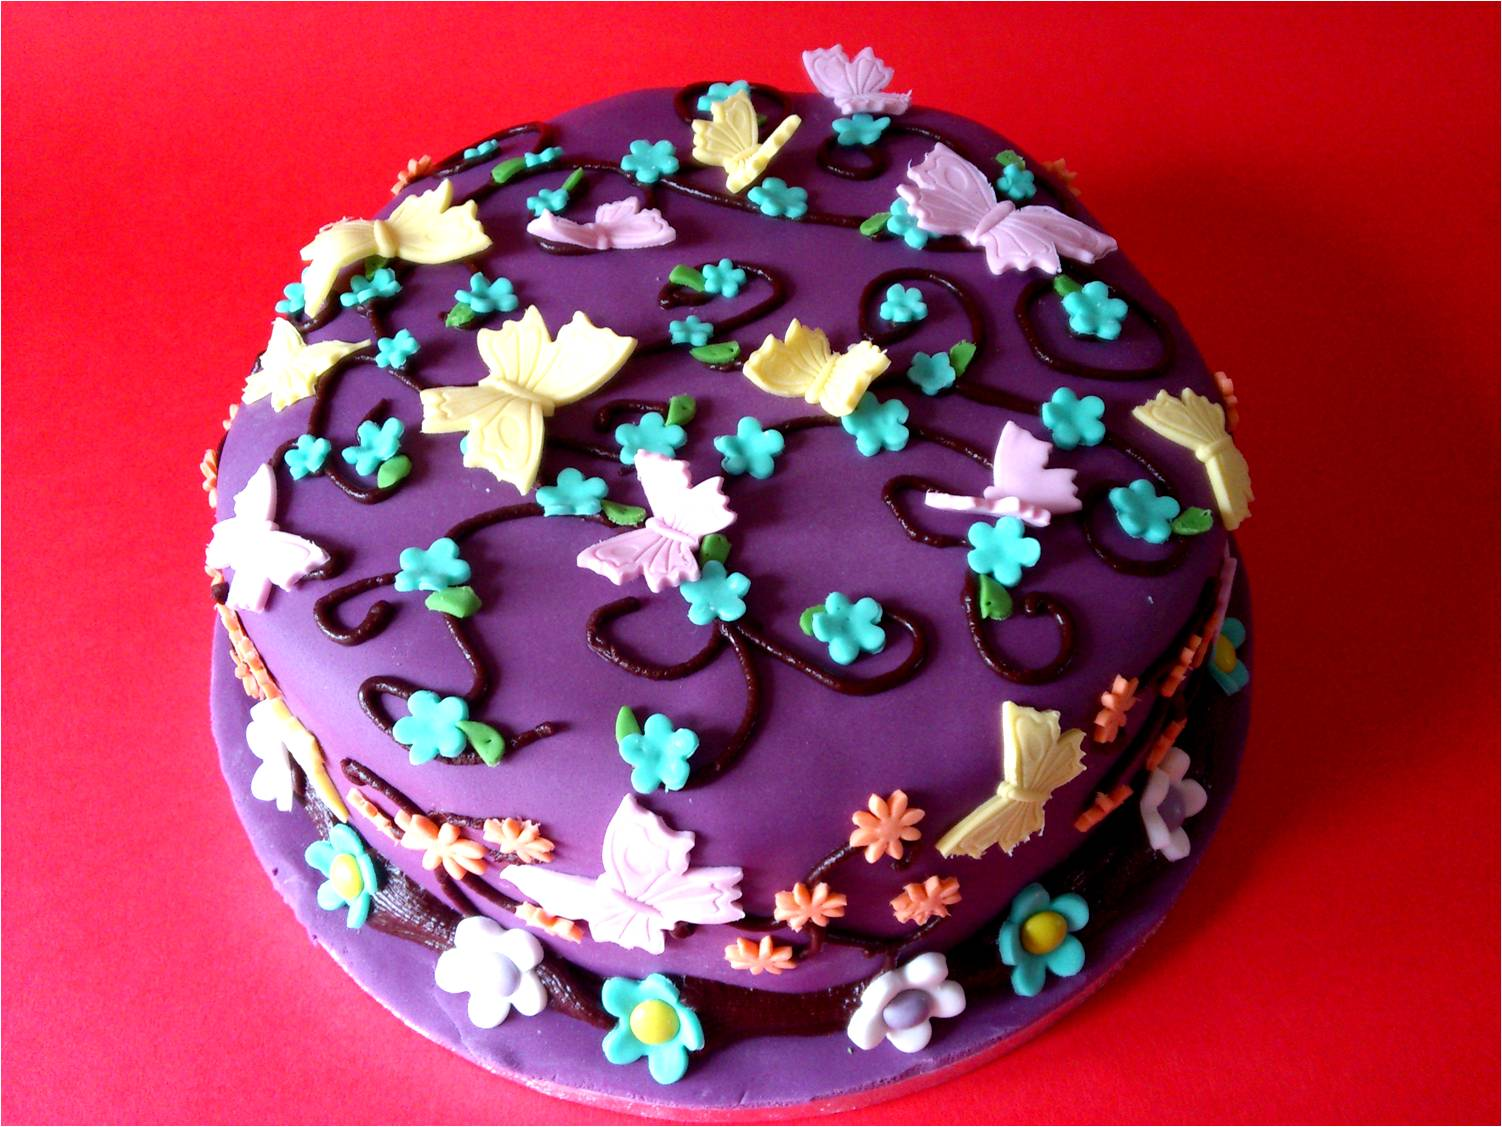 Magnificent Birthday Cakes 1502 x 1127 · 190 kB · jpeg